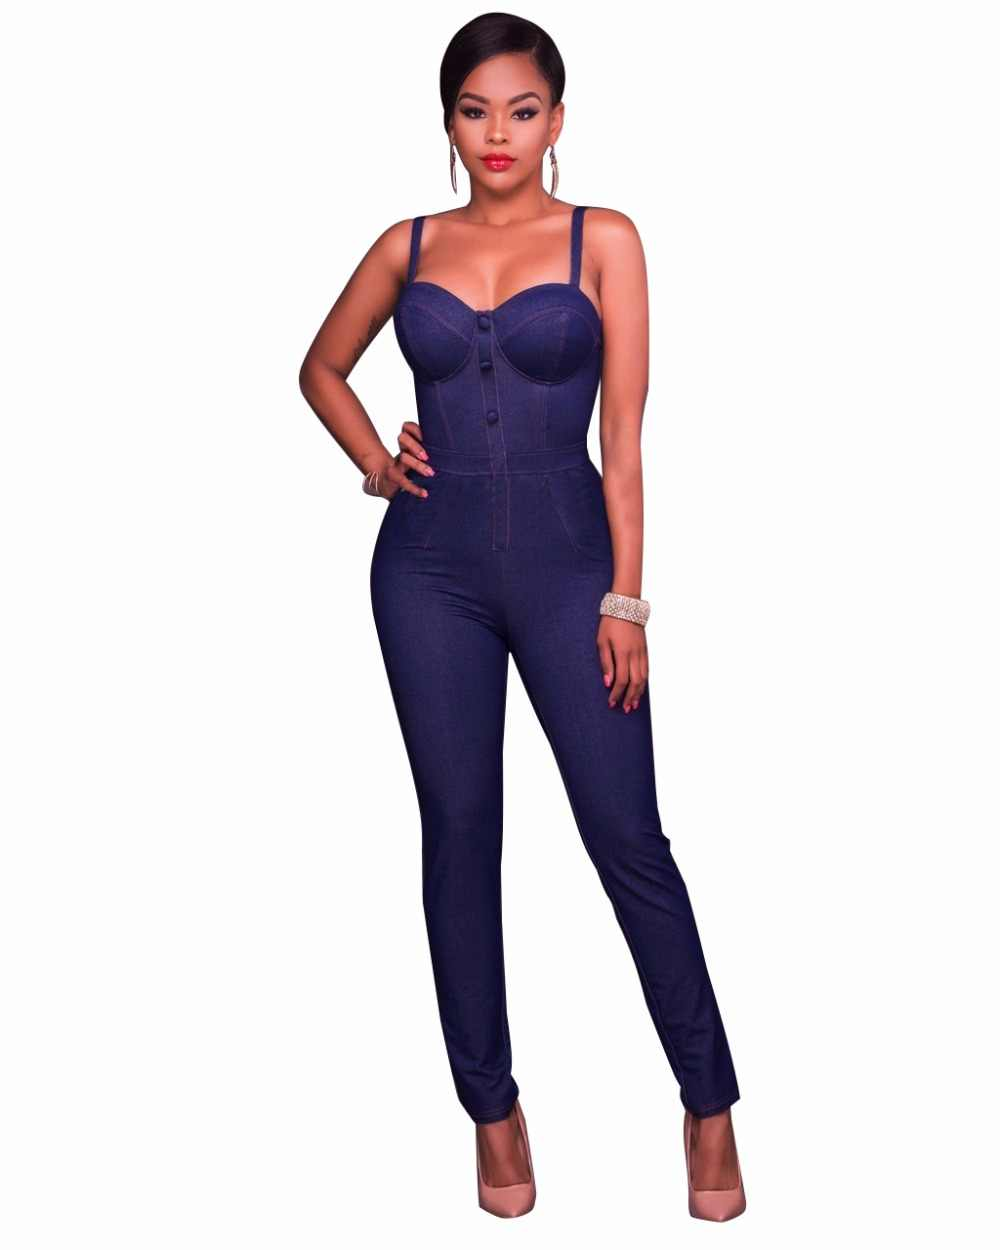 26ed6d4fbe98 New Summer Women Slim Casual Jumpsuits fashion Jeans condole Rompers Female  Sexy Club Zipper Overalls Macacao